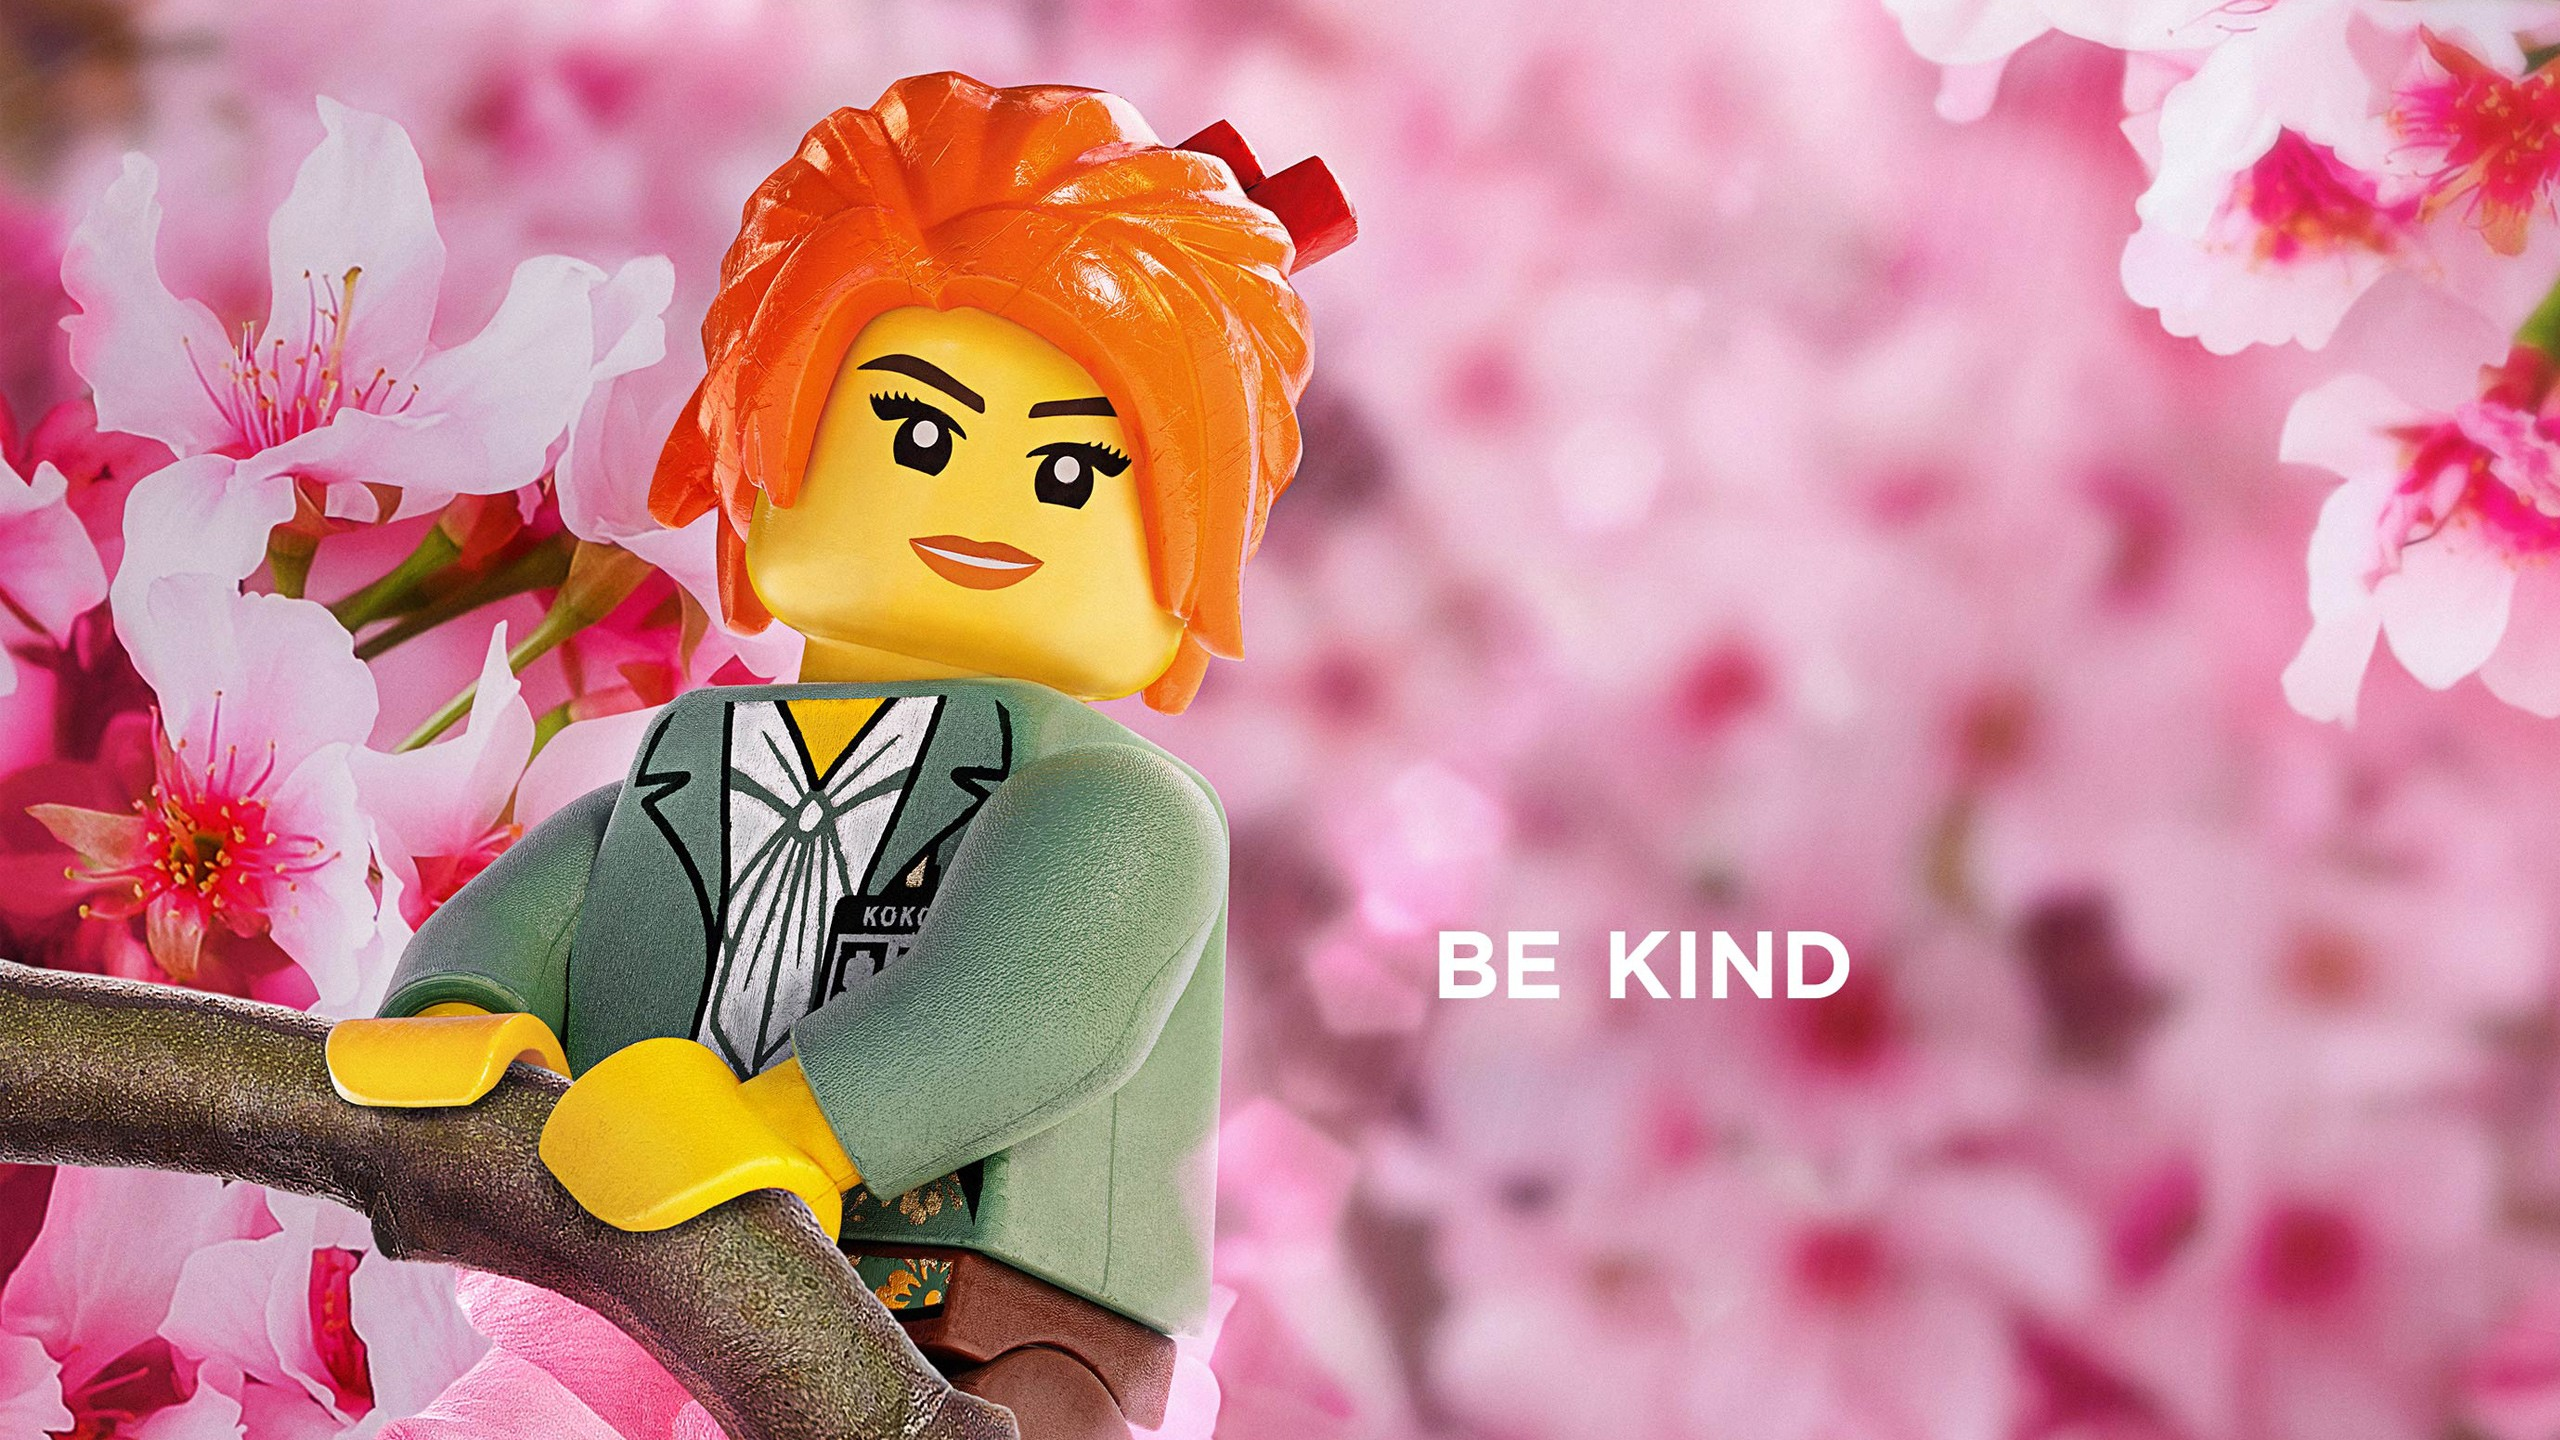 Misako Be Kind The LEGO Ninjago Movie 2017 Wallpapers